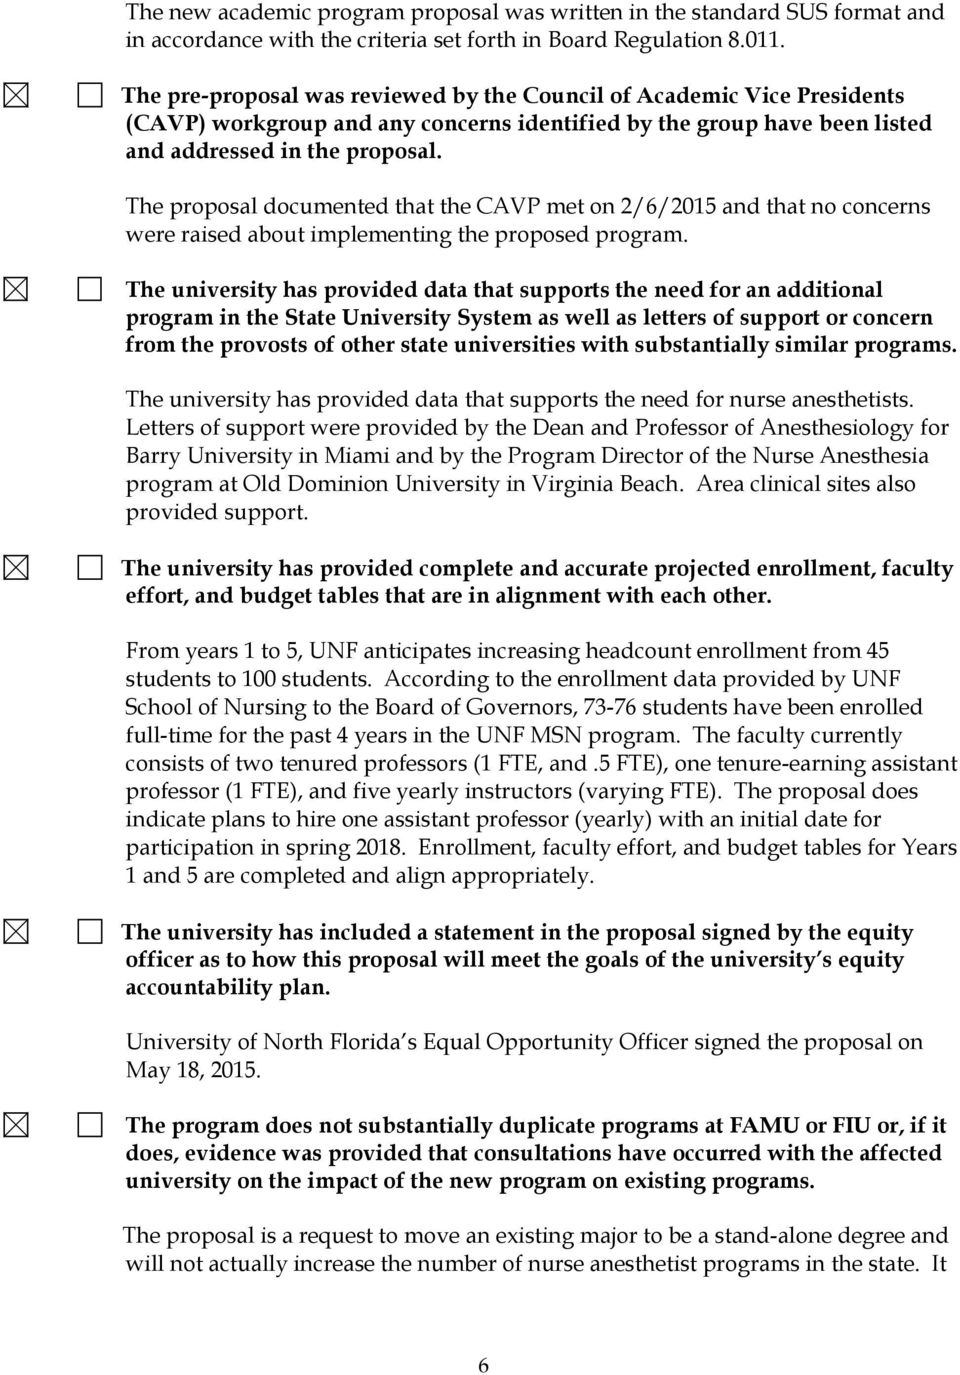 The proposal documented that the CAVP met on 2/6/2015 and that no concerns were raised about implementing the proposed program.